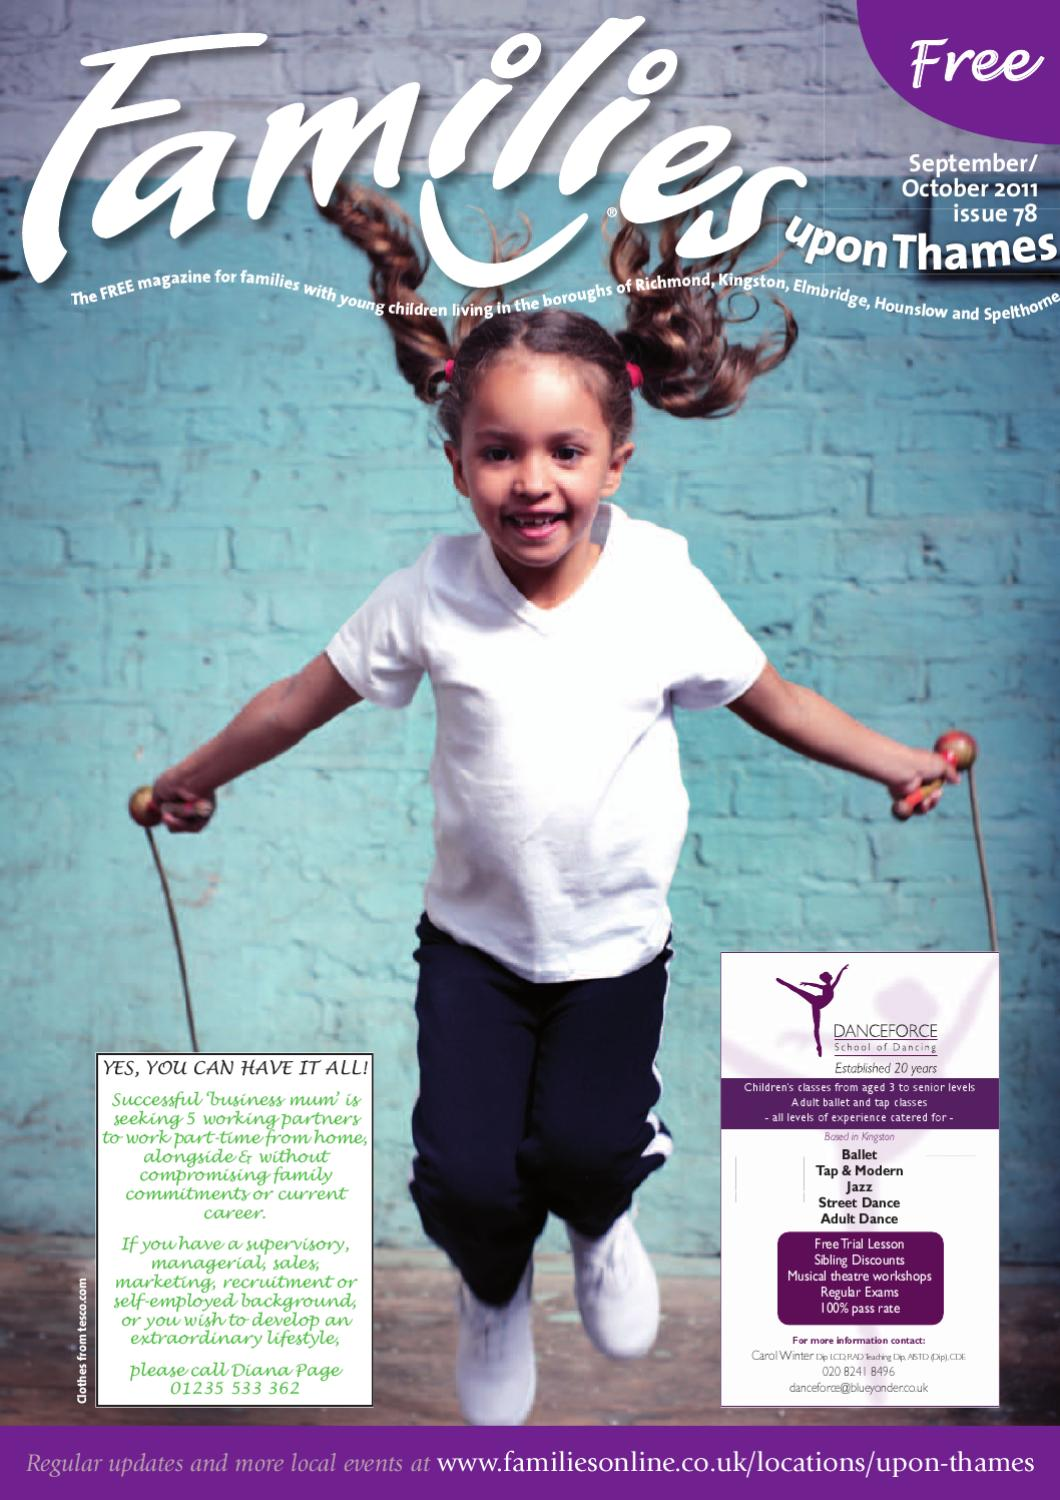 2e4a2fecd Families upon Thames issue 78 Sept Oct 2011 by Families Magazine - issuu